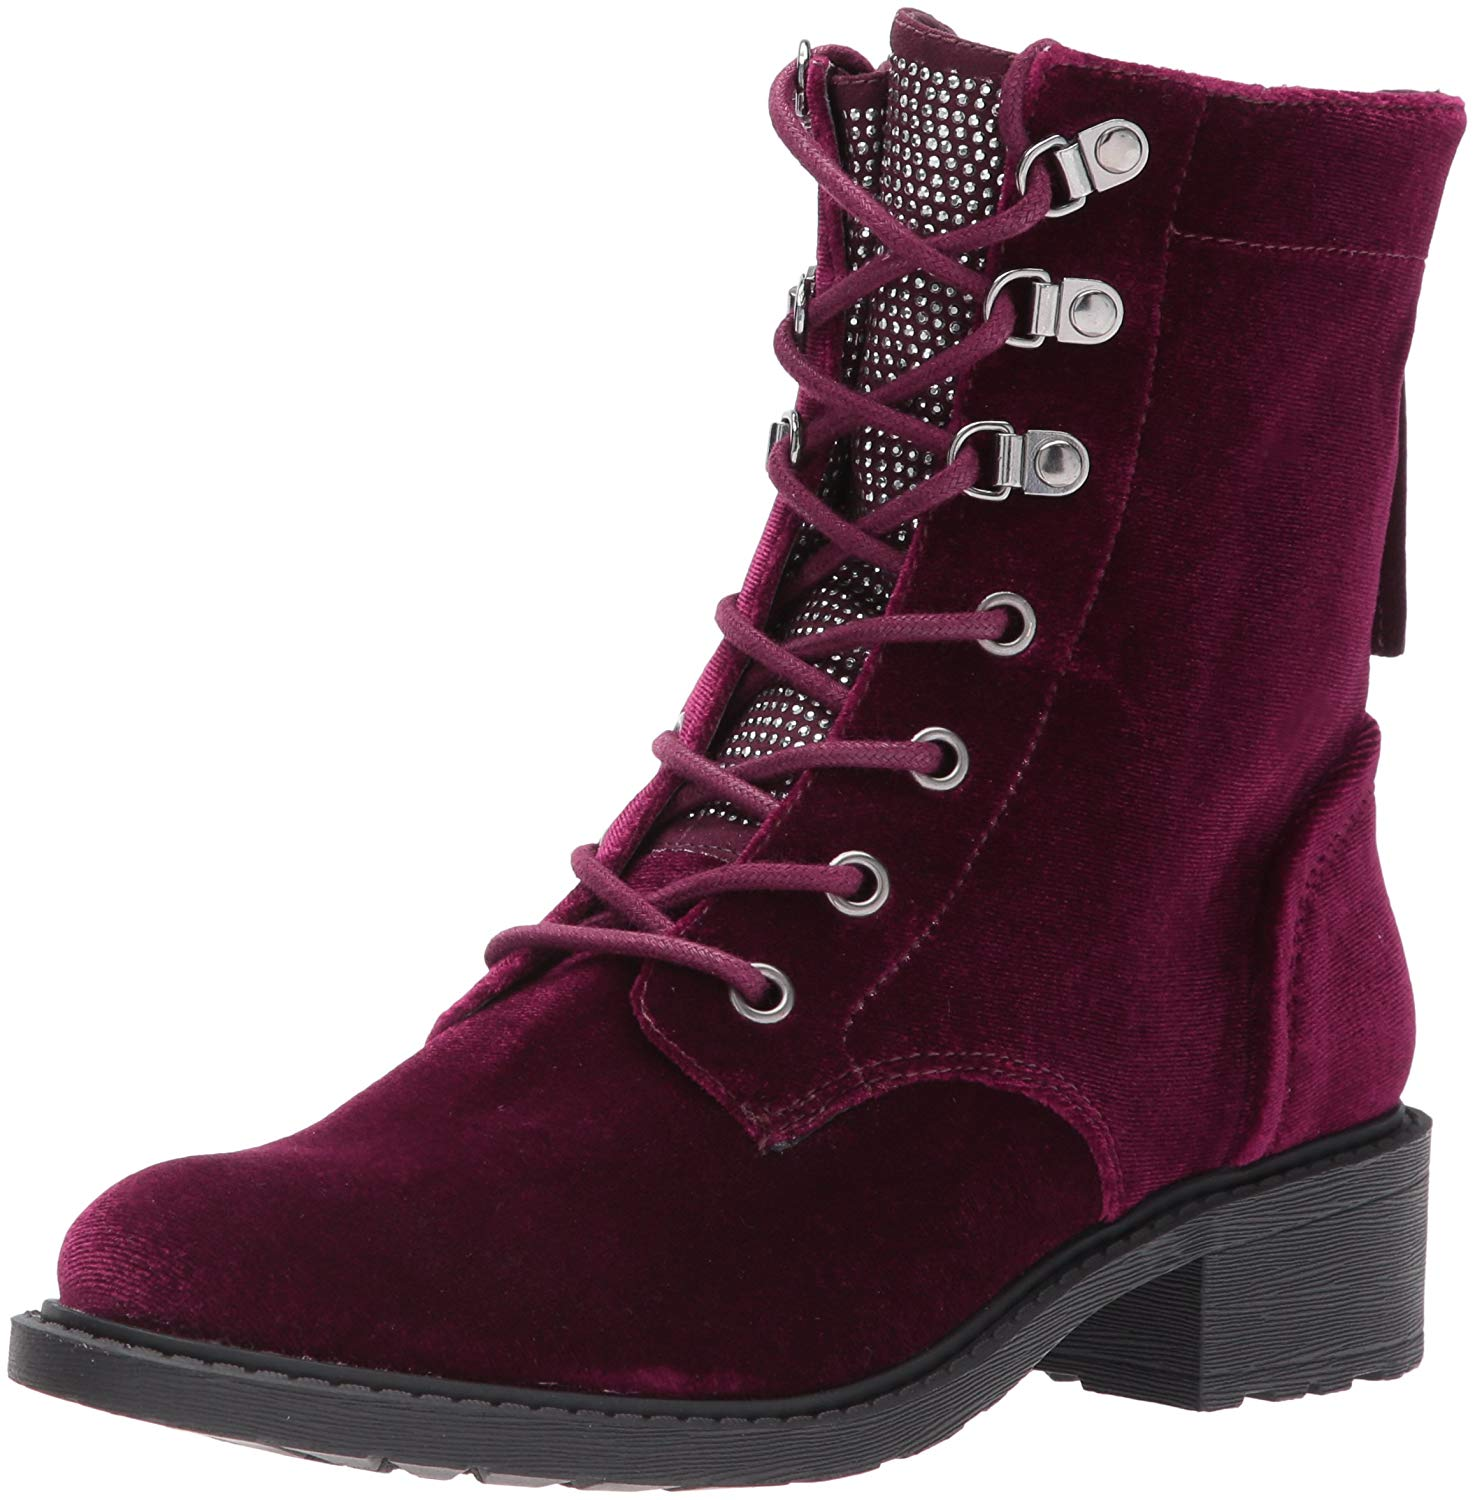 Circus By Taille Rose Malbec Bottes Sam Edelfemme Femmes Couleur vn0mN8w